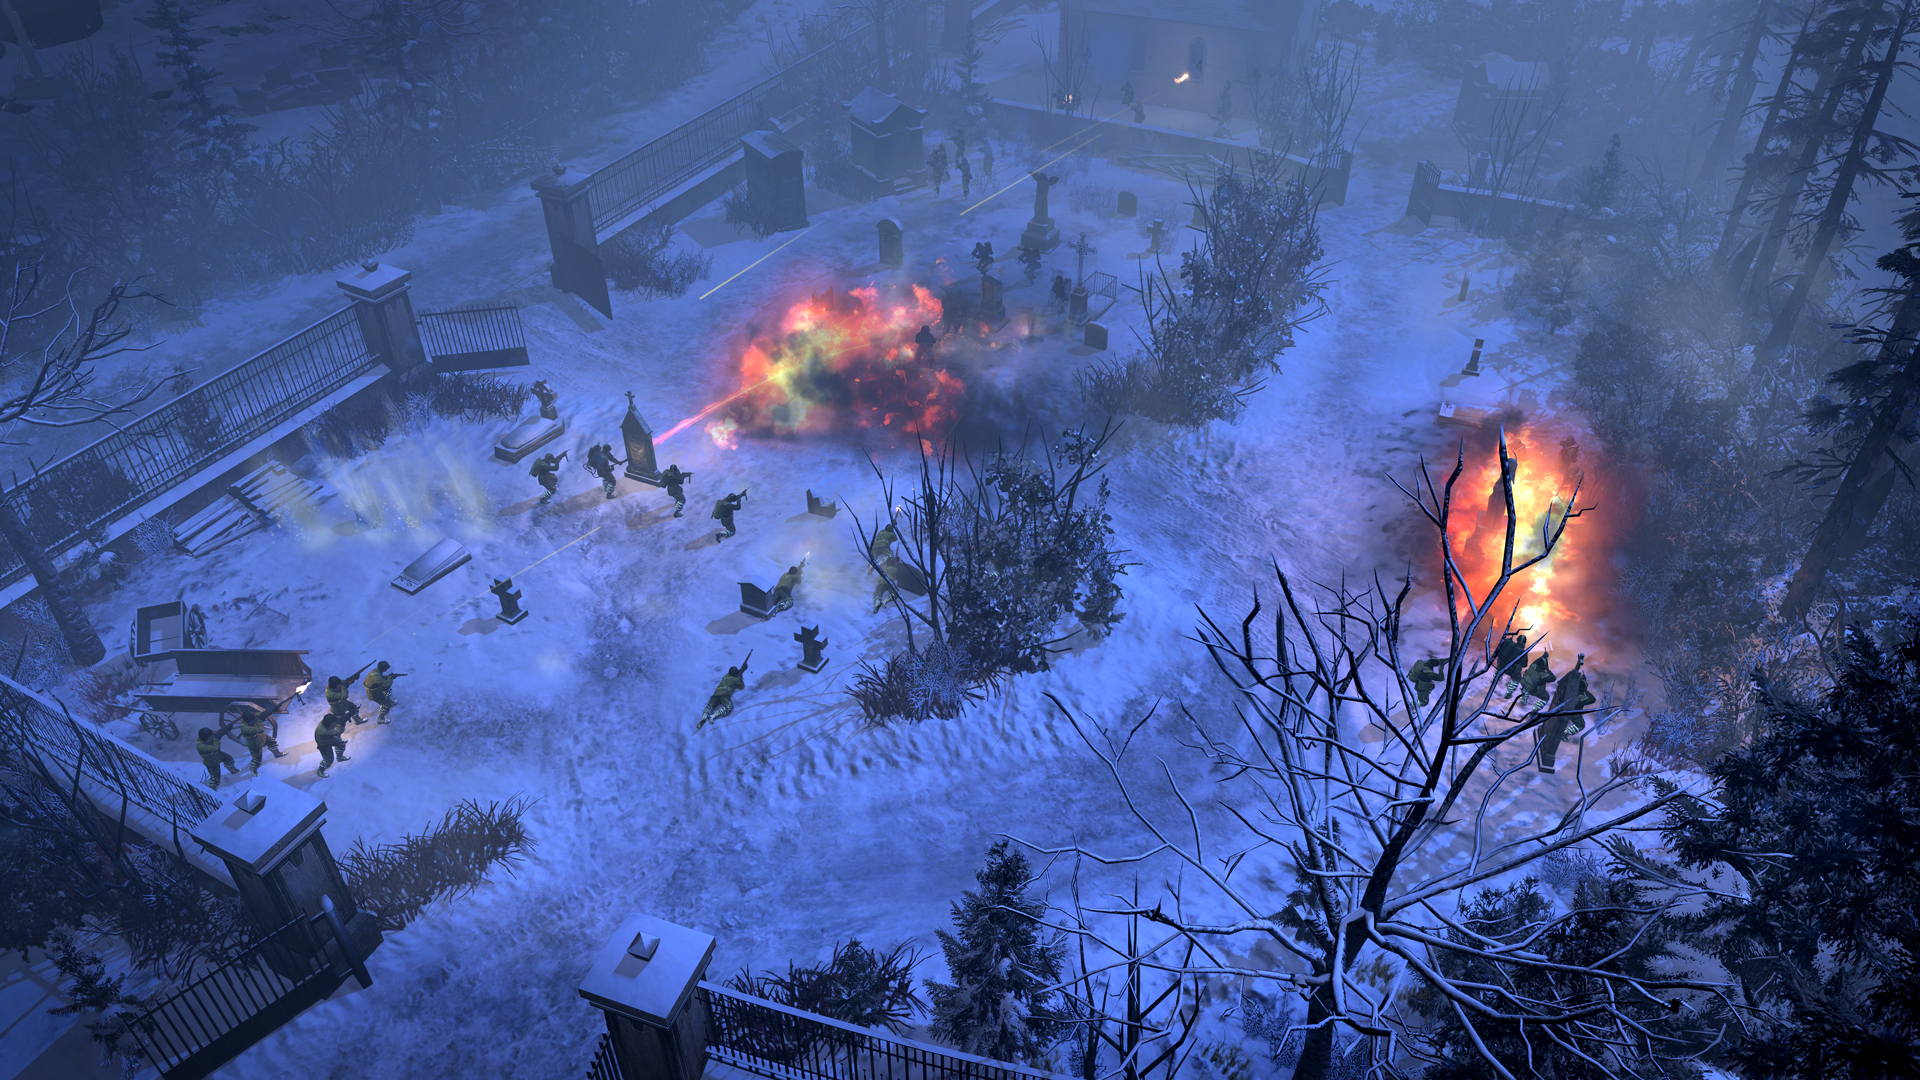 aa screenshot 4 - Company of Heroes 2: Ardennes Assault Review